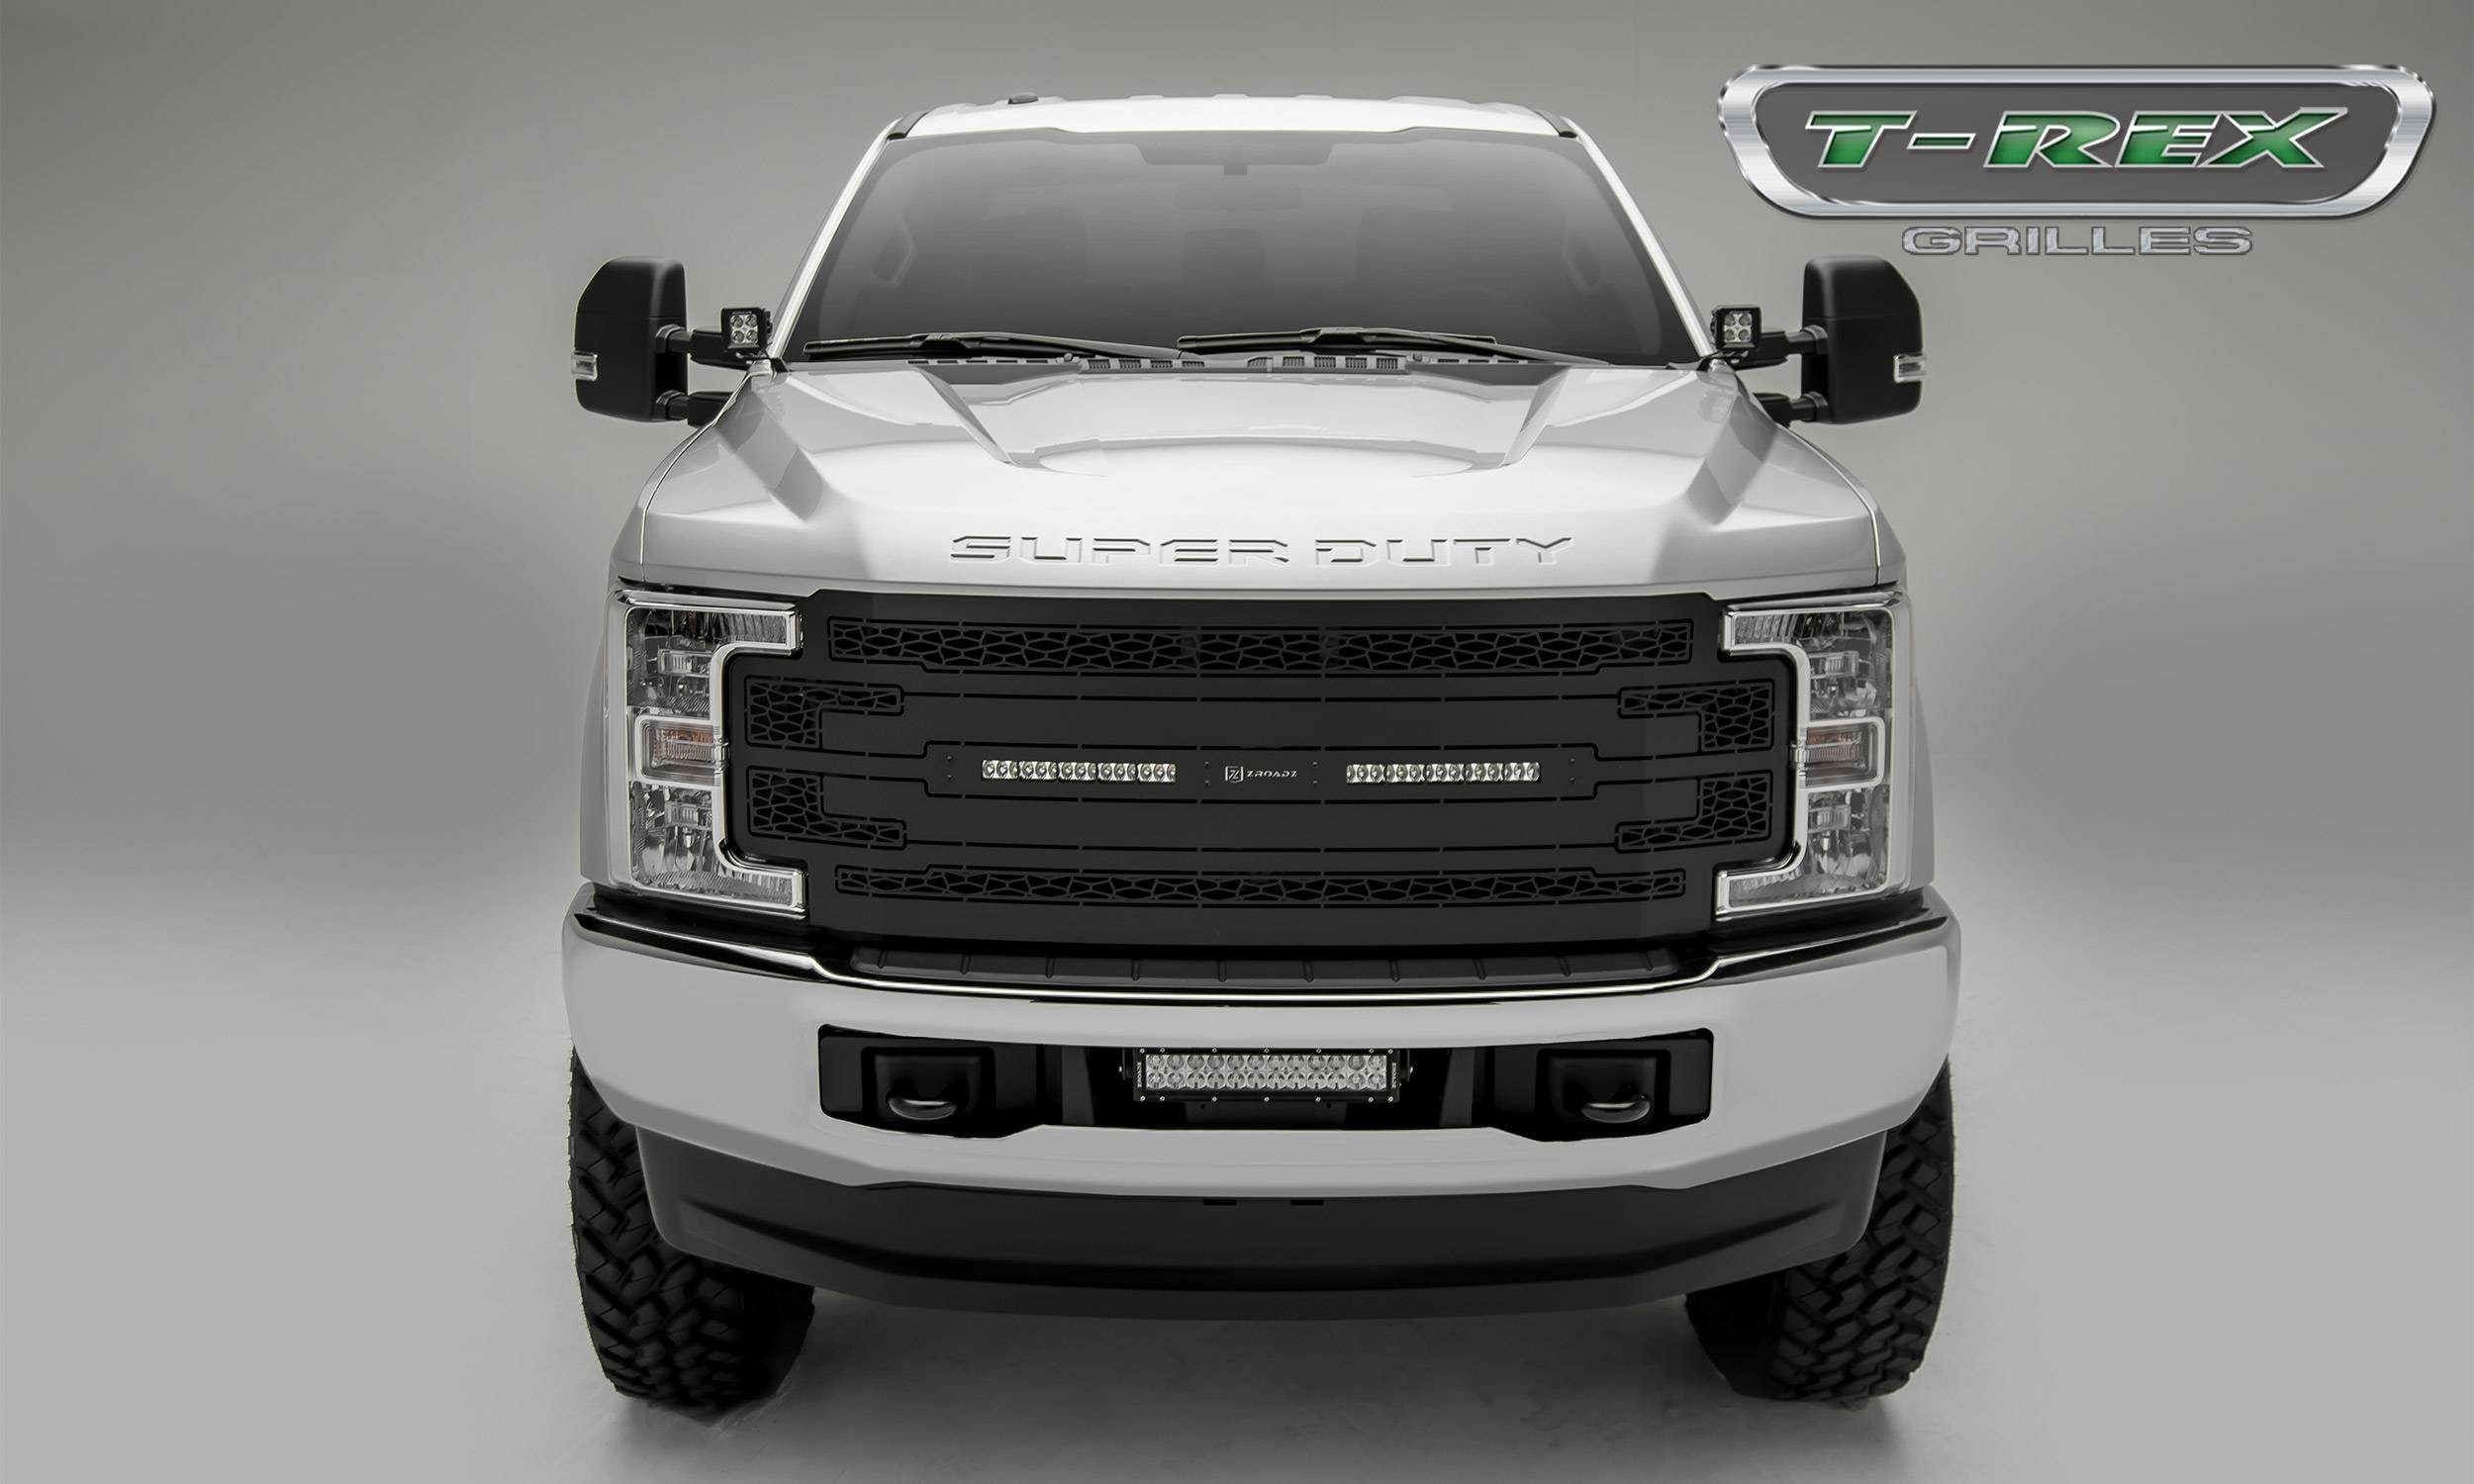 "T-REX Ford F-250 / F-350 Super Duty - ZROADZ Series - Main Replacement Grille - (2) 10"" Slim Line Single Row LED Light Bars - ZROADZ Laser Cut pattern with Black Powdercoat Finish - Pt # Z315471"